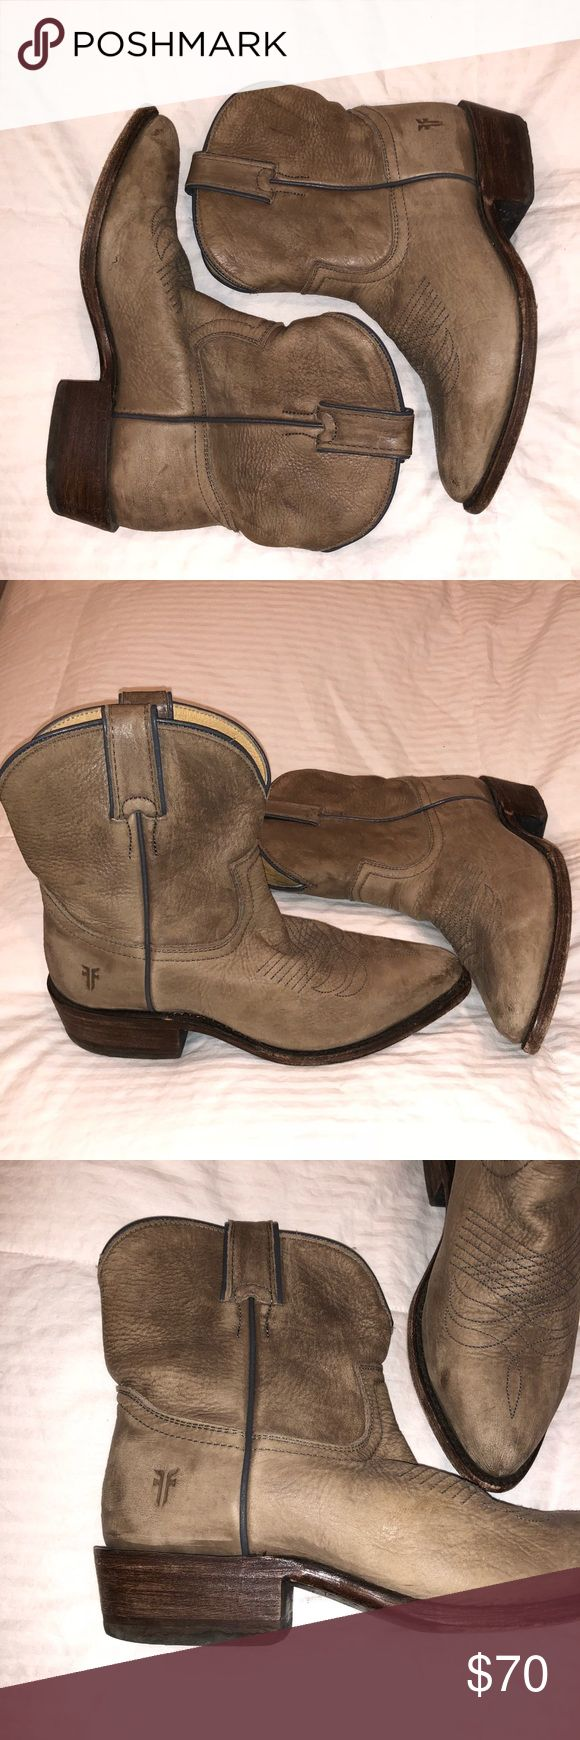 FRY COWBOY BOOTS Distressed leather cowboy boots. Lightly worn, love these boots because so cute & comfy but just don't have occasion to wear! From Frye brand so excellent quality leather. Frye Shoes Ankle Boots & Booties